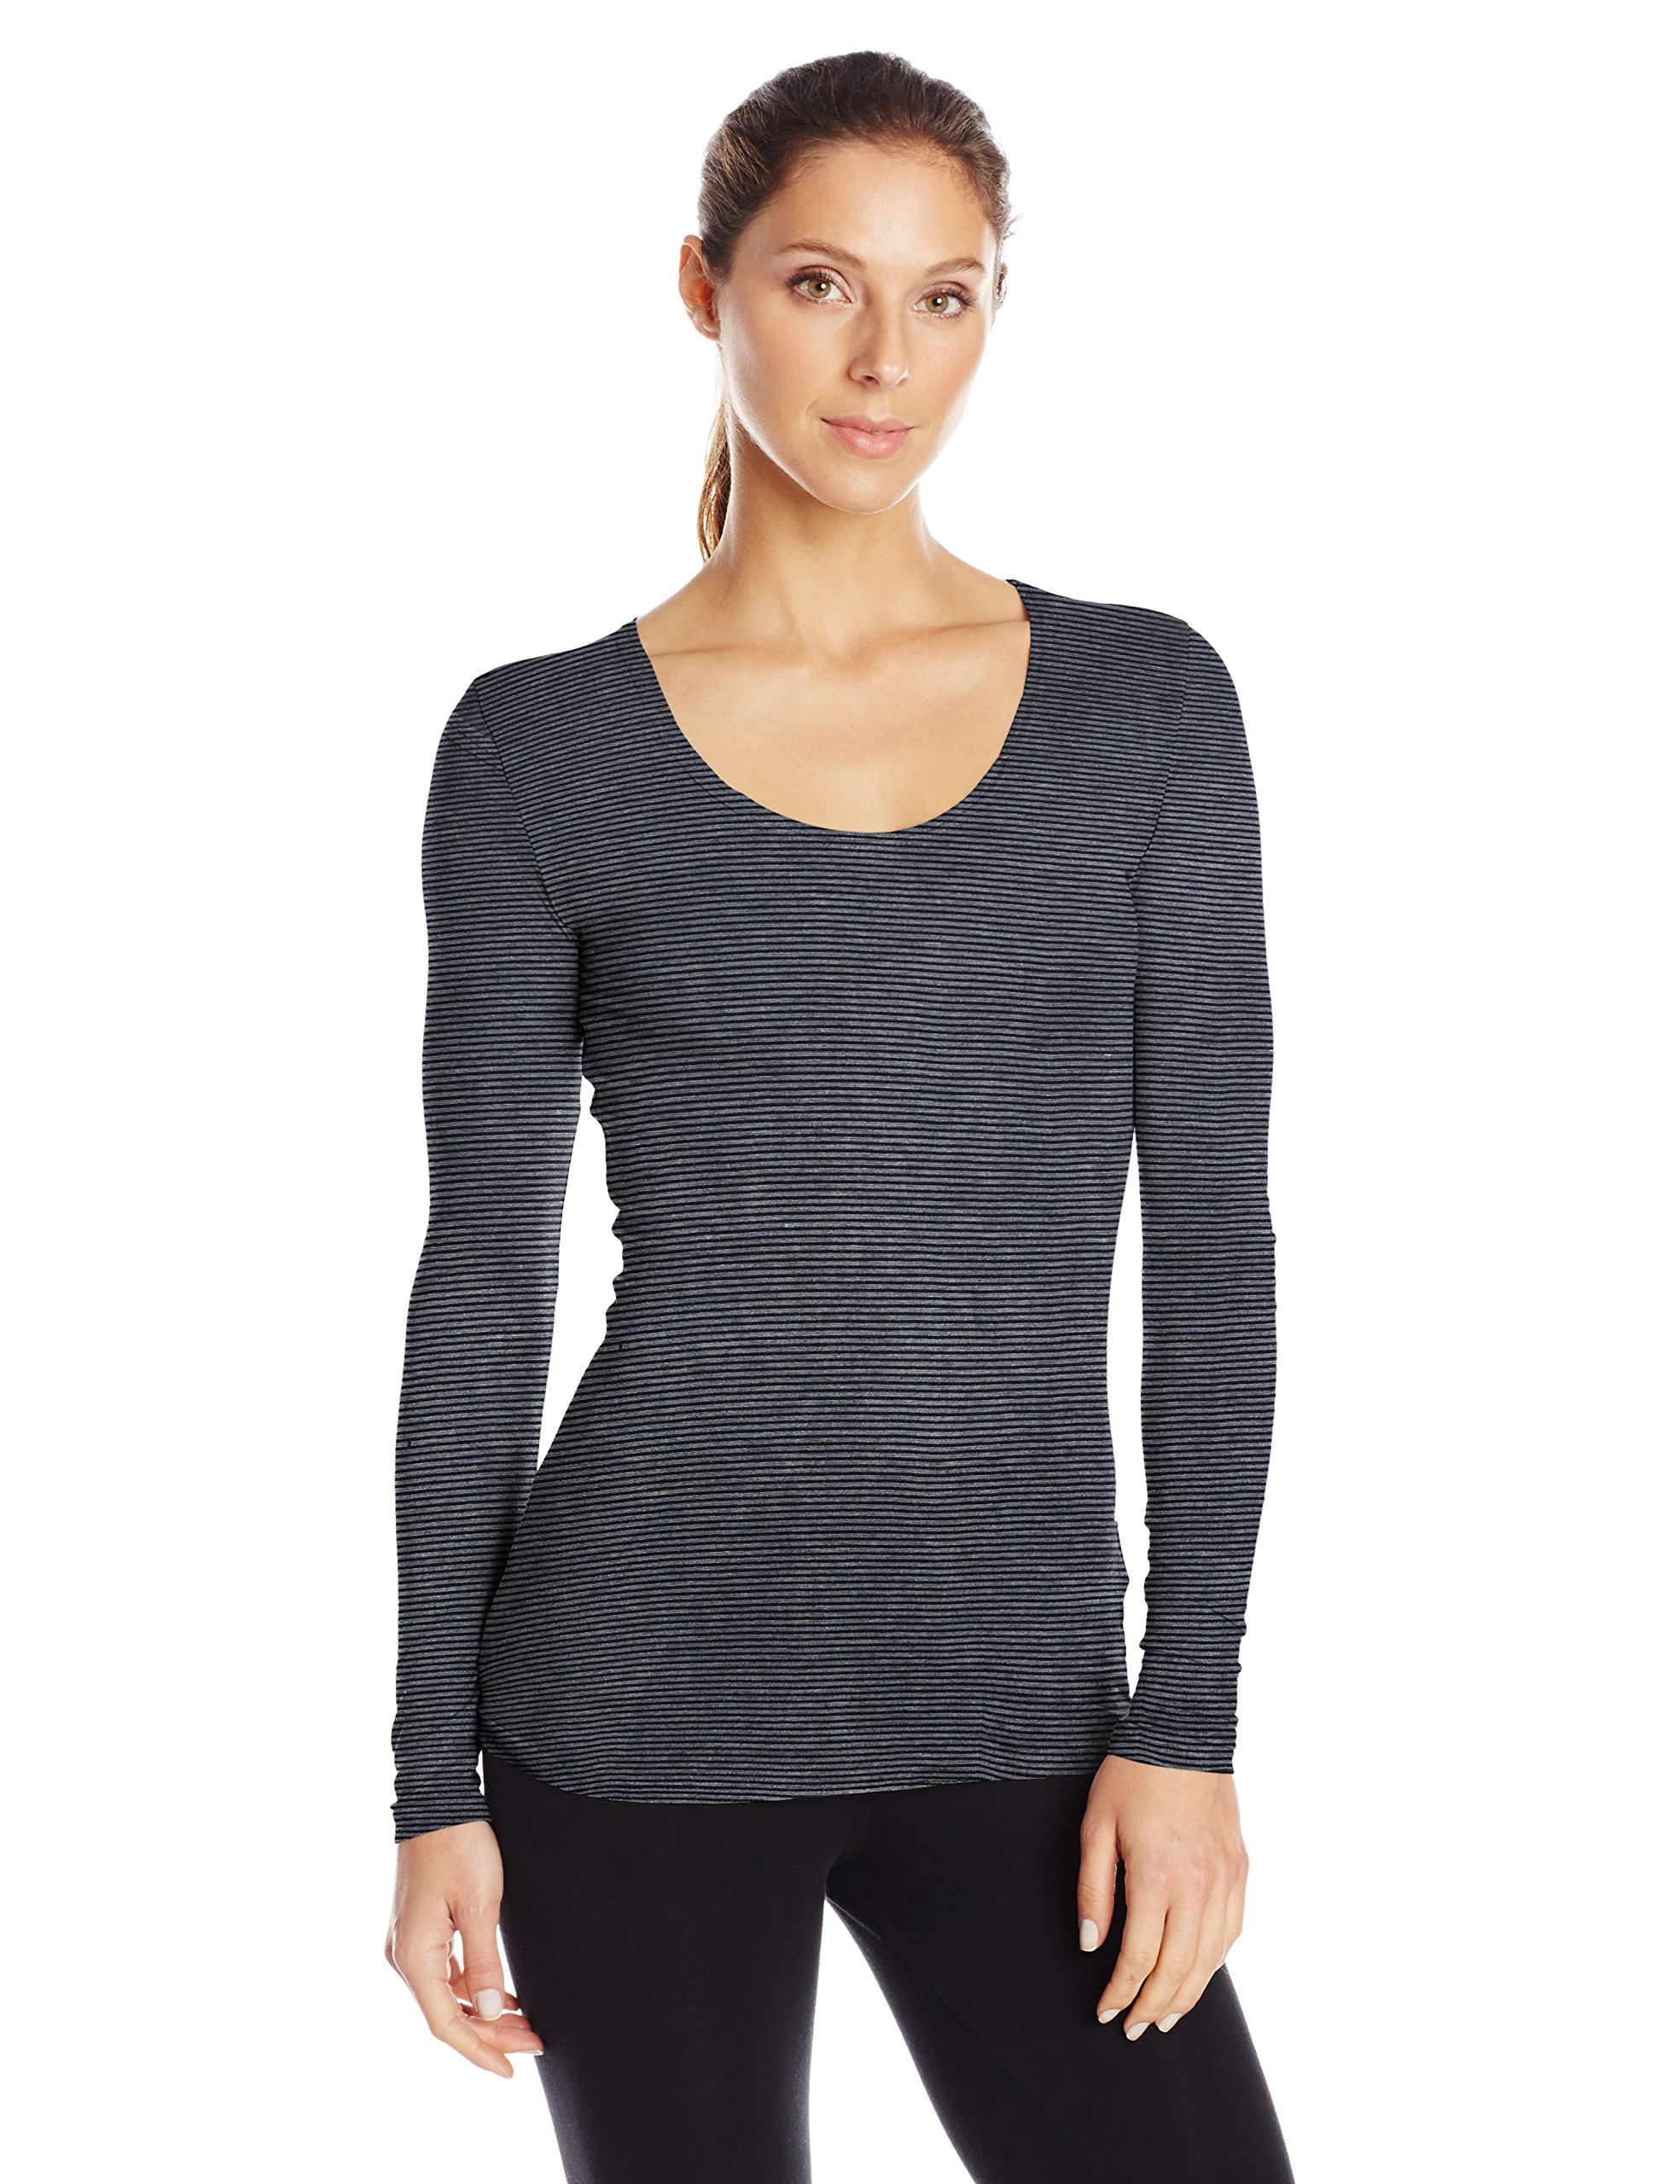 32Degrees Women's Heat Scoop Neck Thermal Top, Heather Grey, Medium